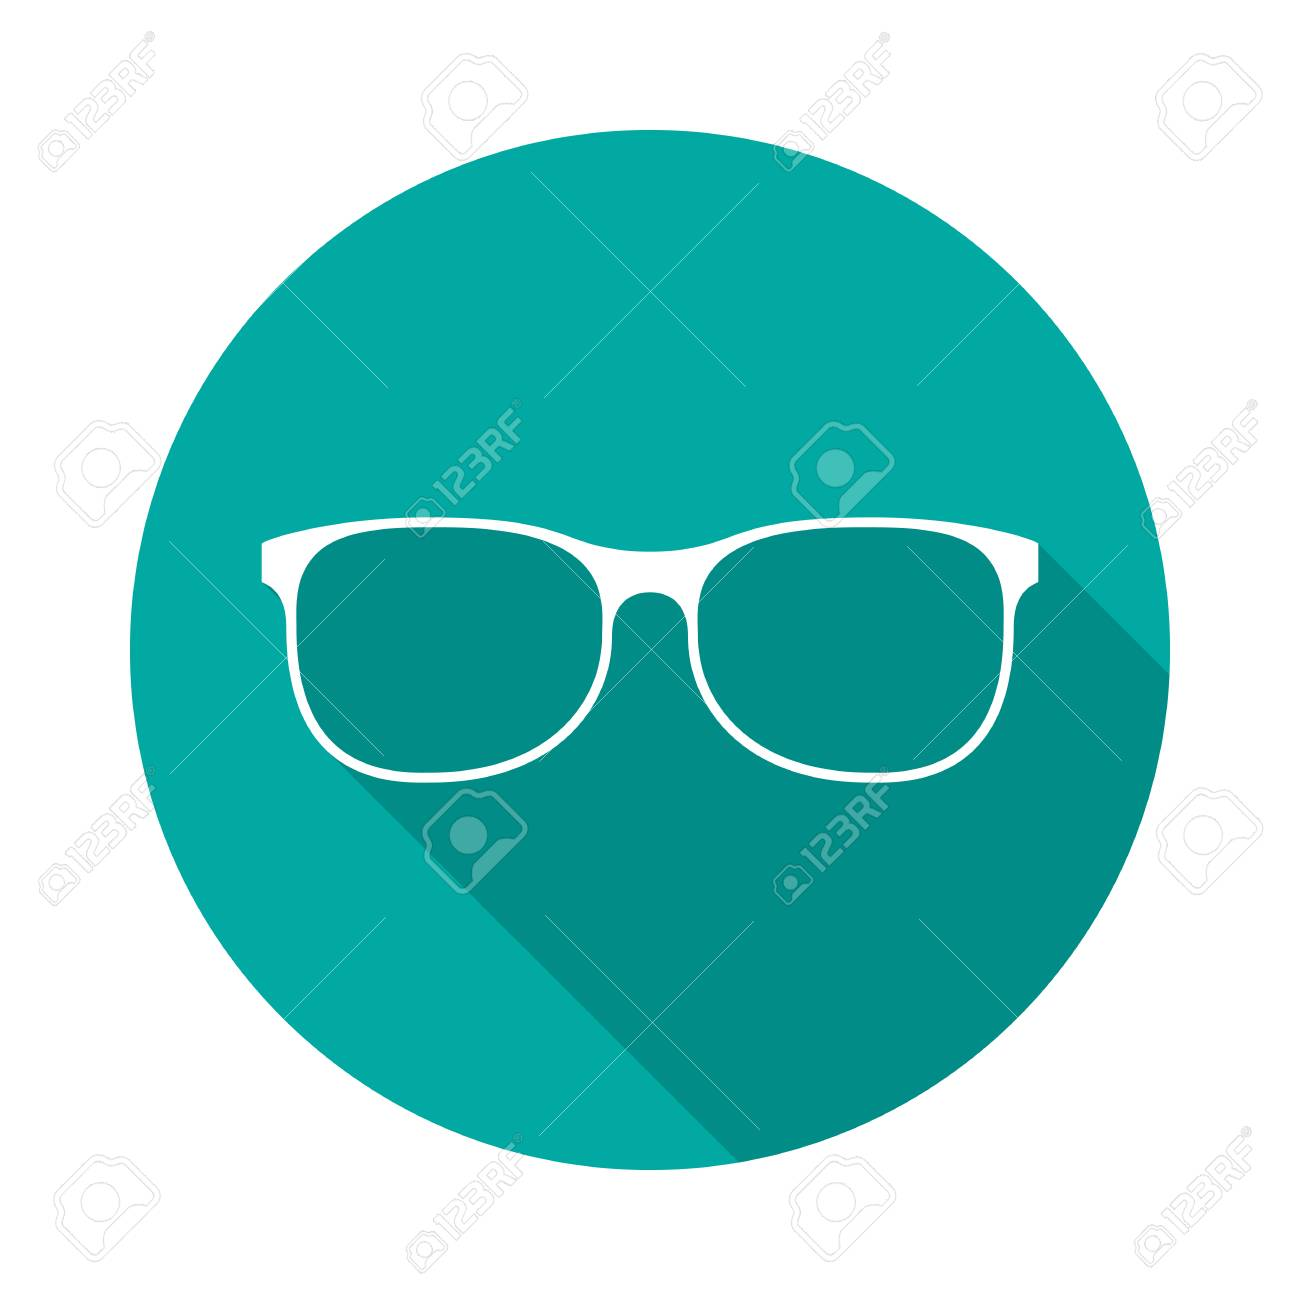 90448234-glasses-circle-icon-with-long-shadow-flat-design-style-glasses-simple-silhouette-modern-minimalist-r.jpg